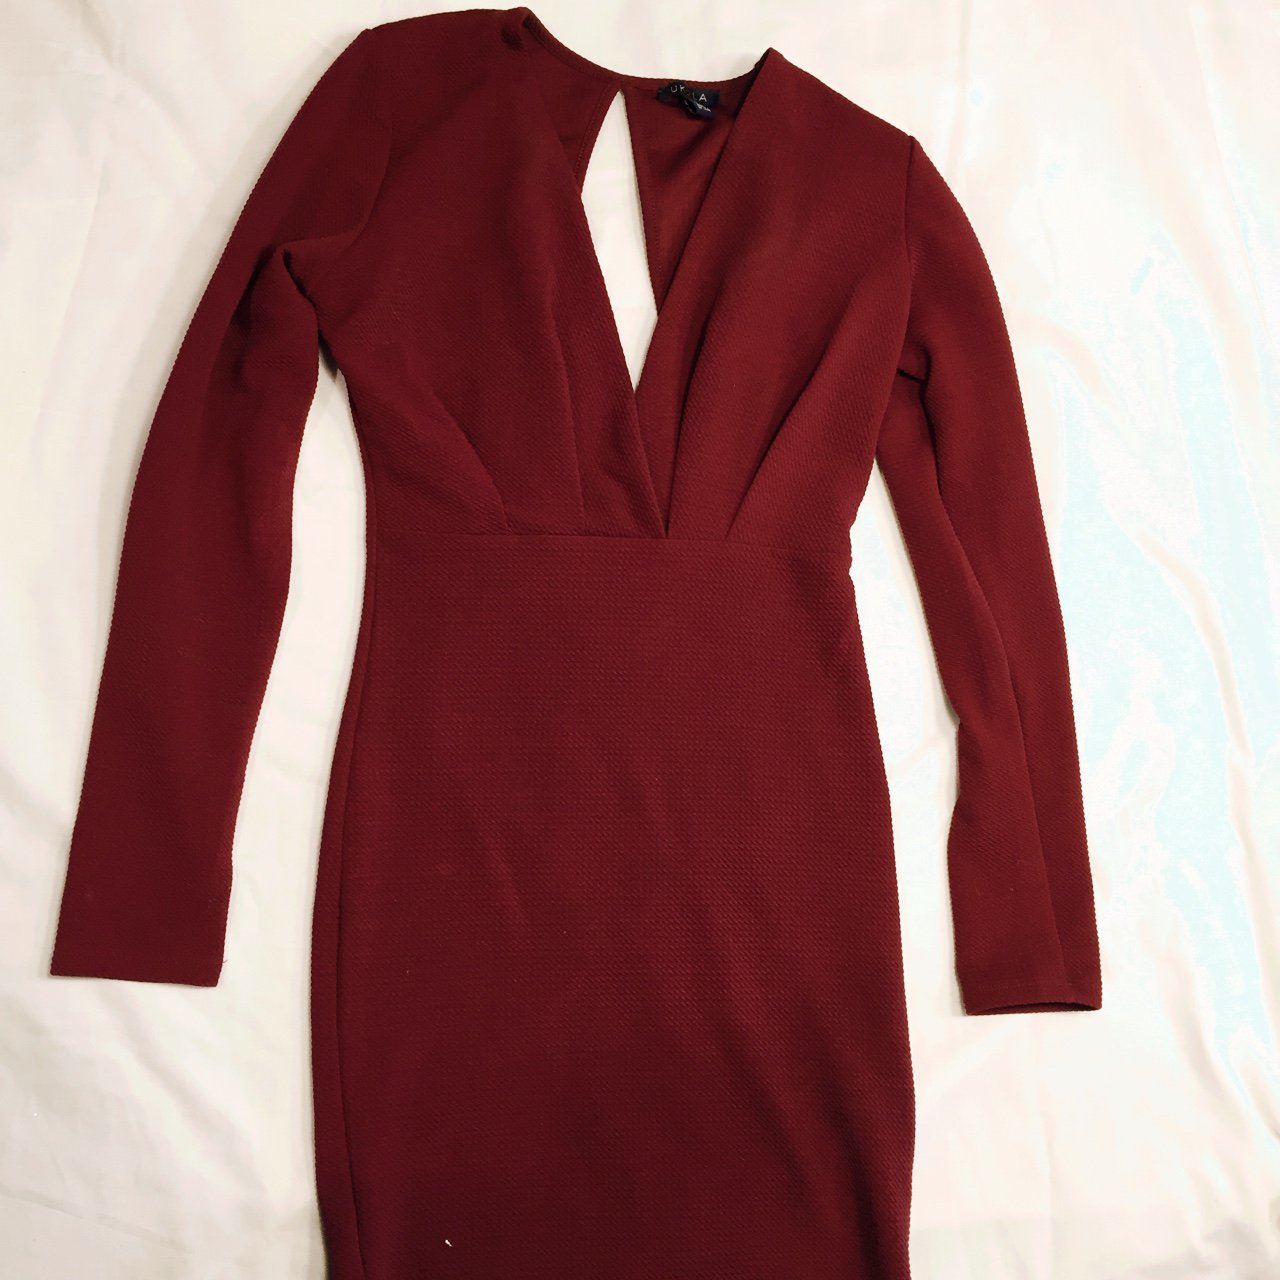 8144ec6ff69 Cute Dark Red Dresses - Gomes Weine AG